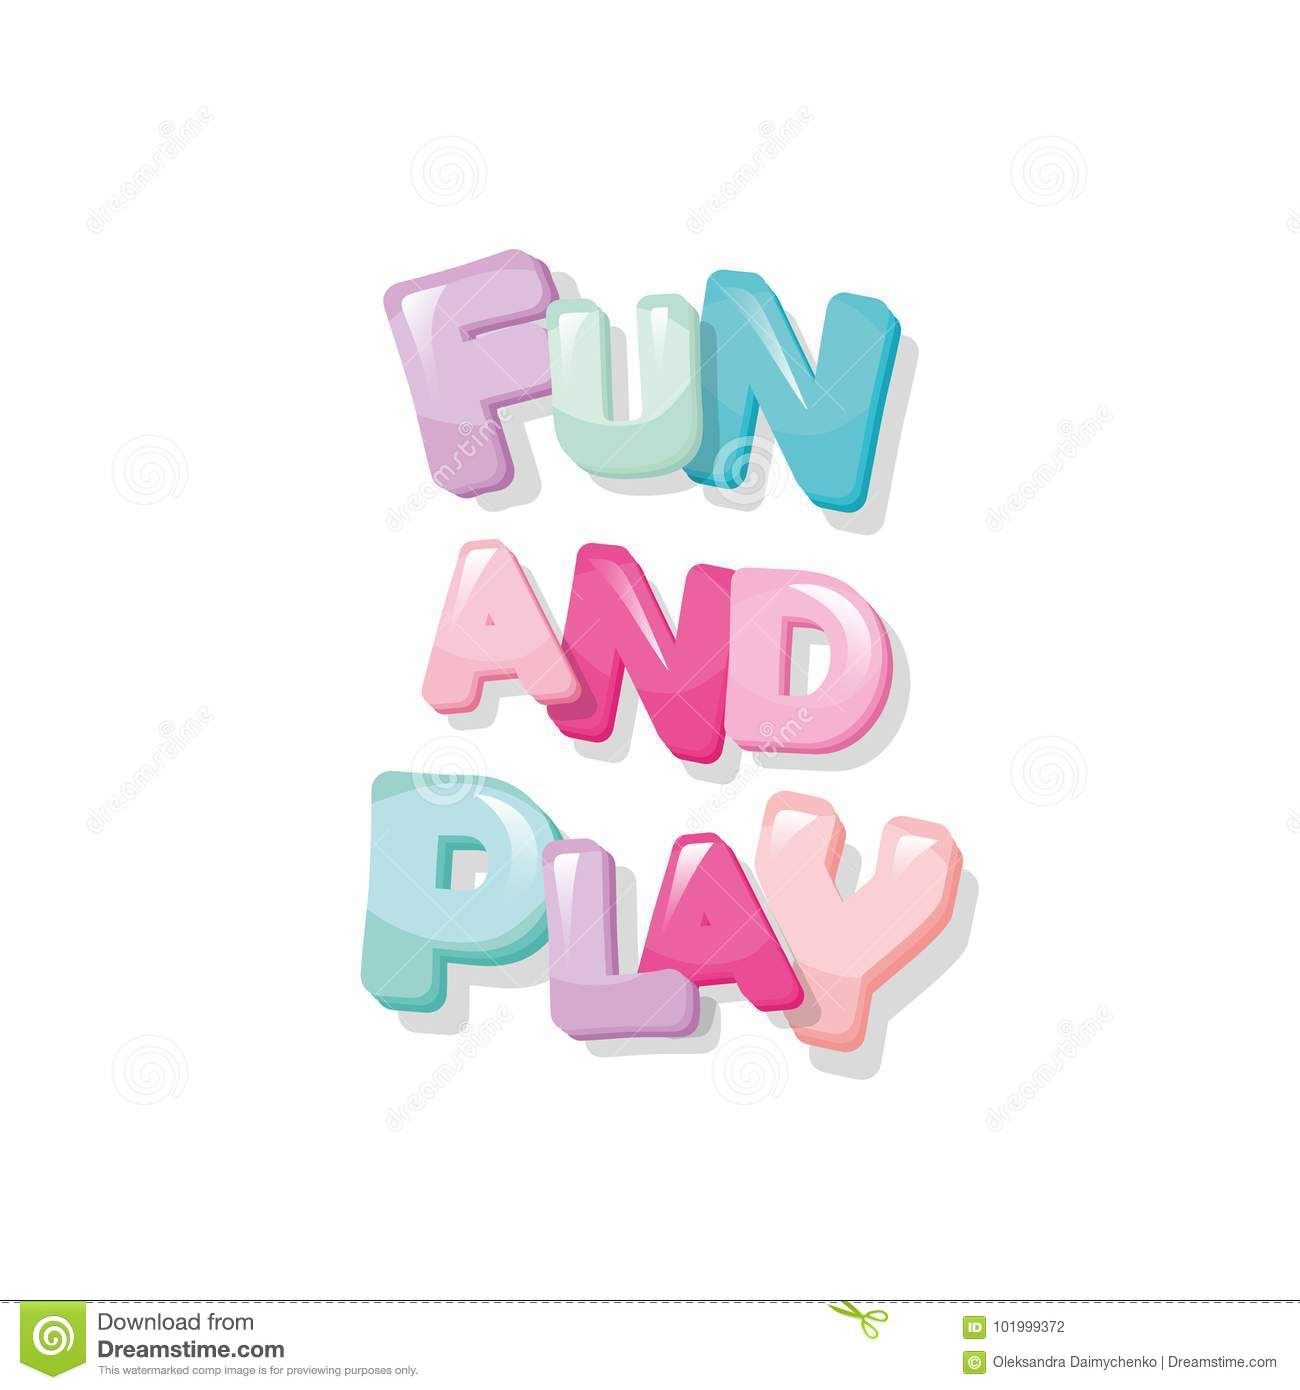 Fun And Play. Cartoon Glossy Letters In Pastel Colors. Stock Vector ...